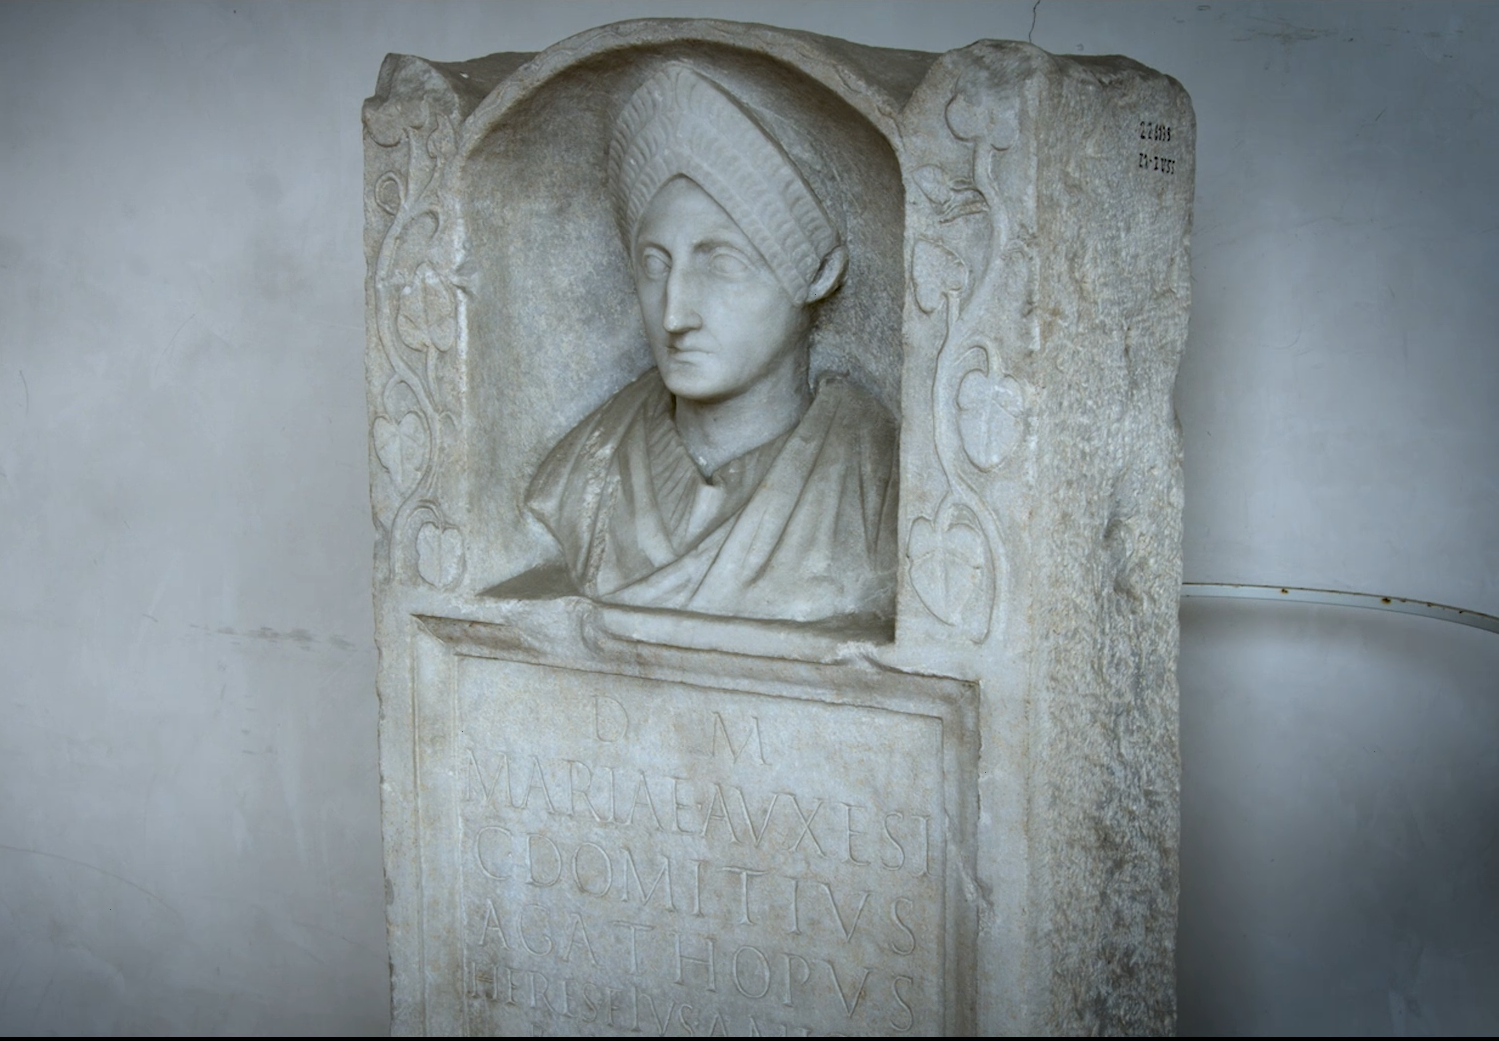 Marble monument with portrait bust of a woman above an inscription